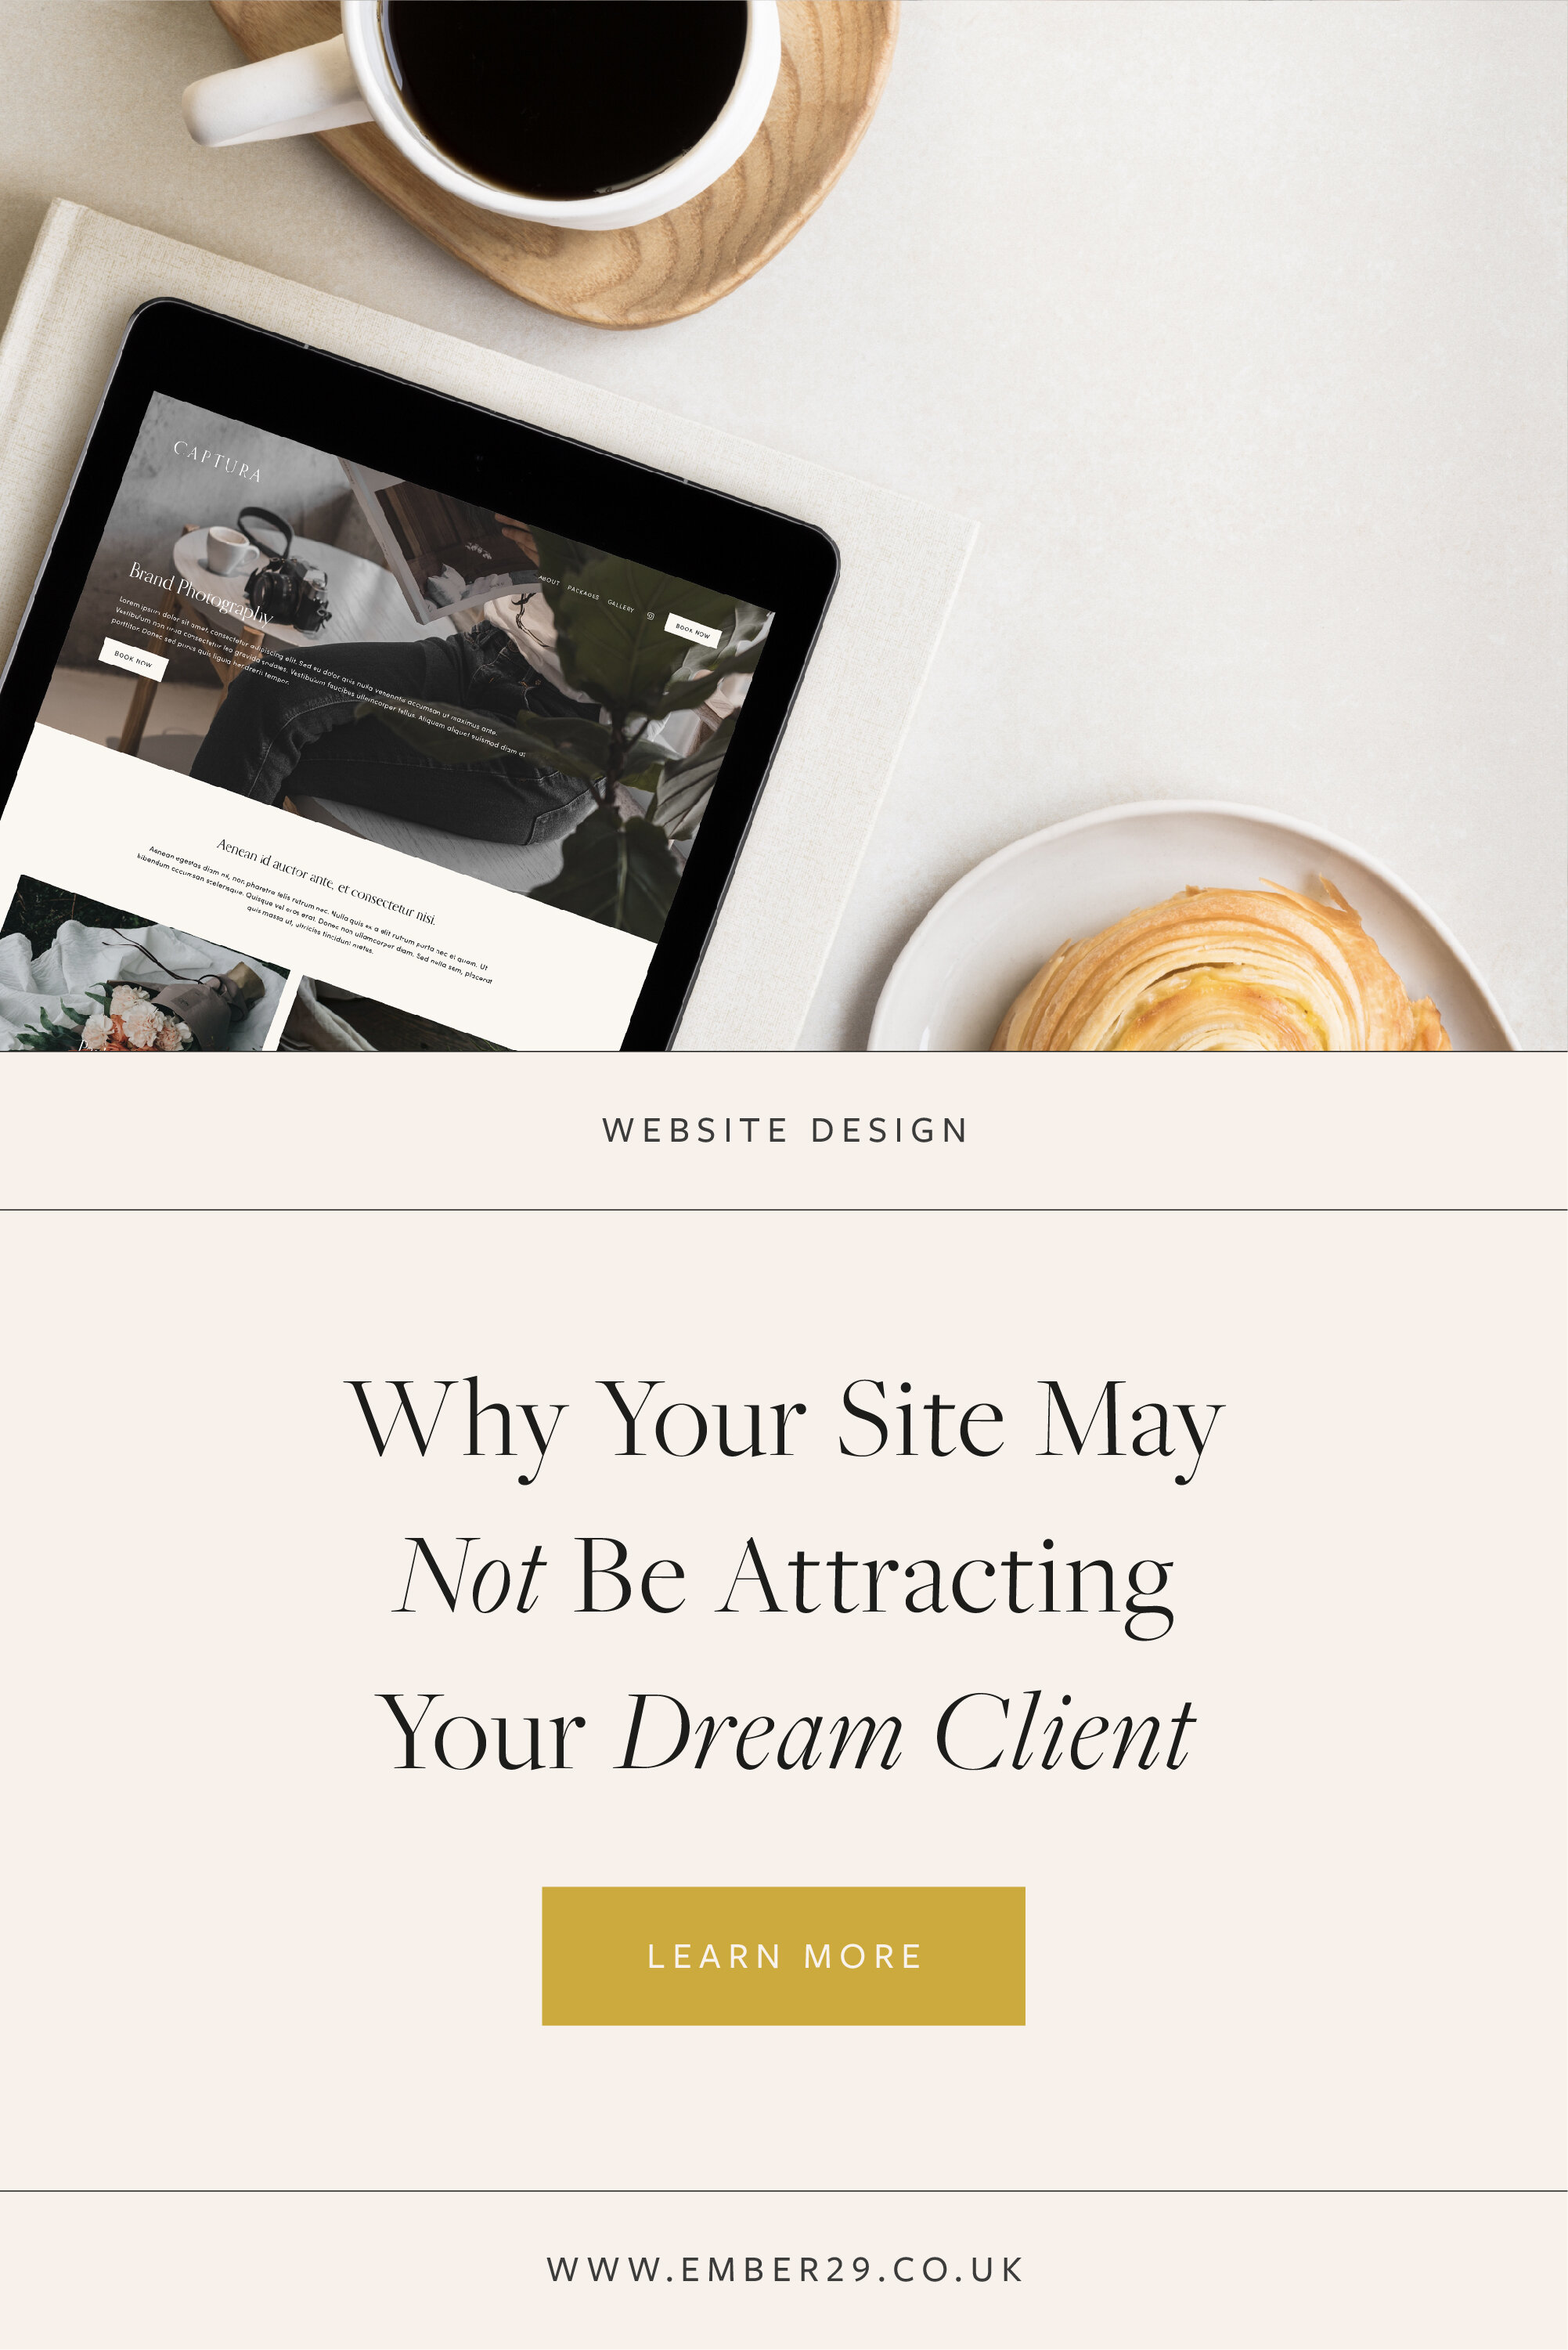 Why Your Site May Not be Attracting Your Dream Client